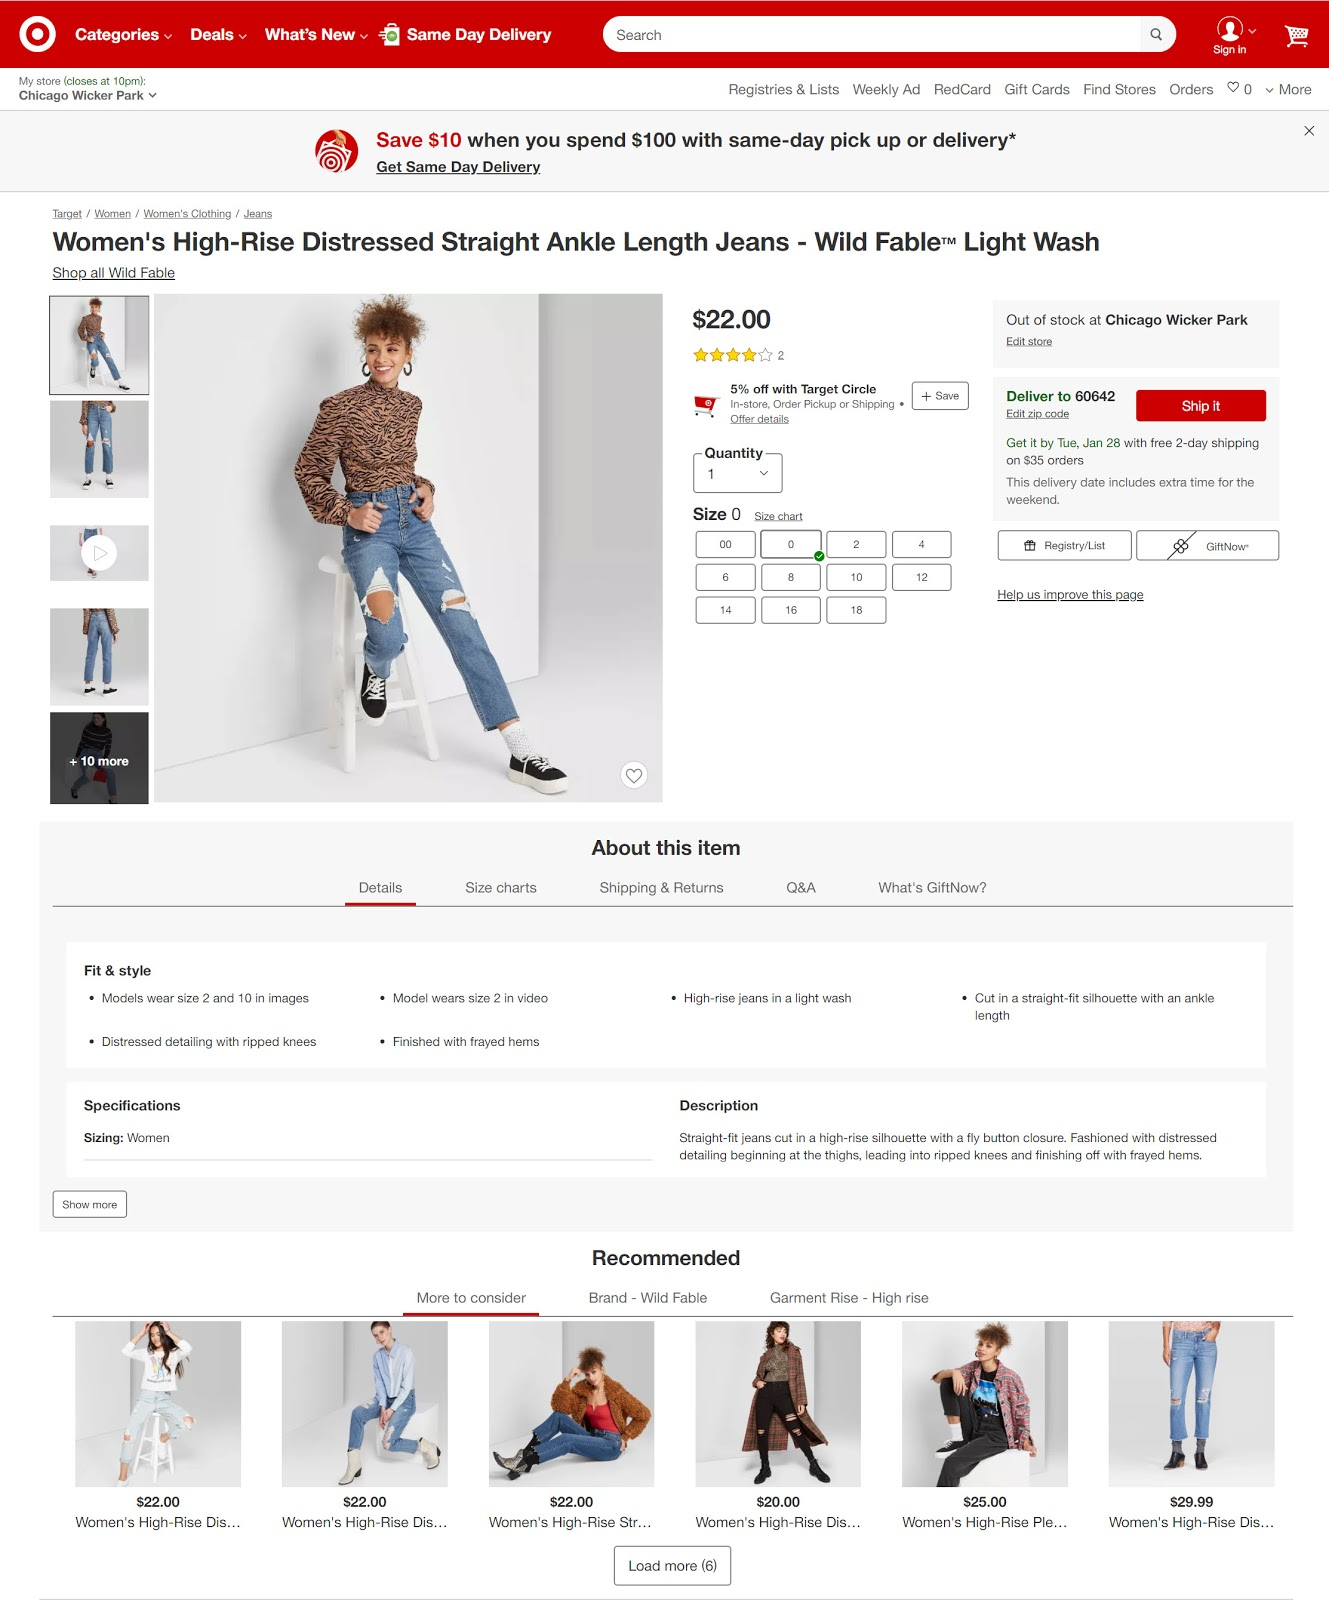 A woman in a pair of stylish jeans on the Target website with related, featured styles